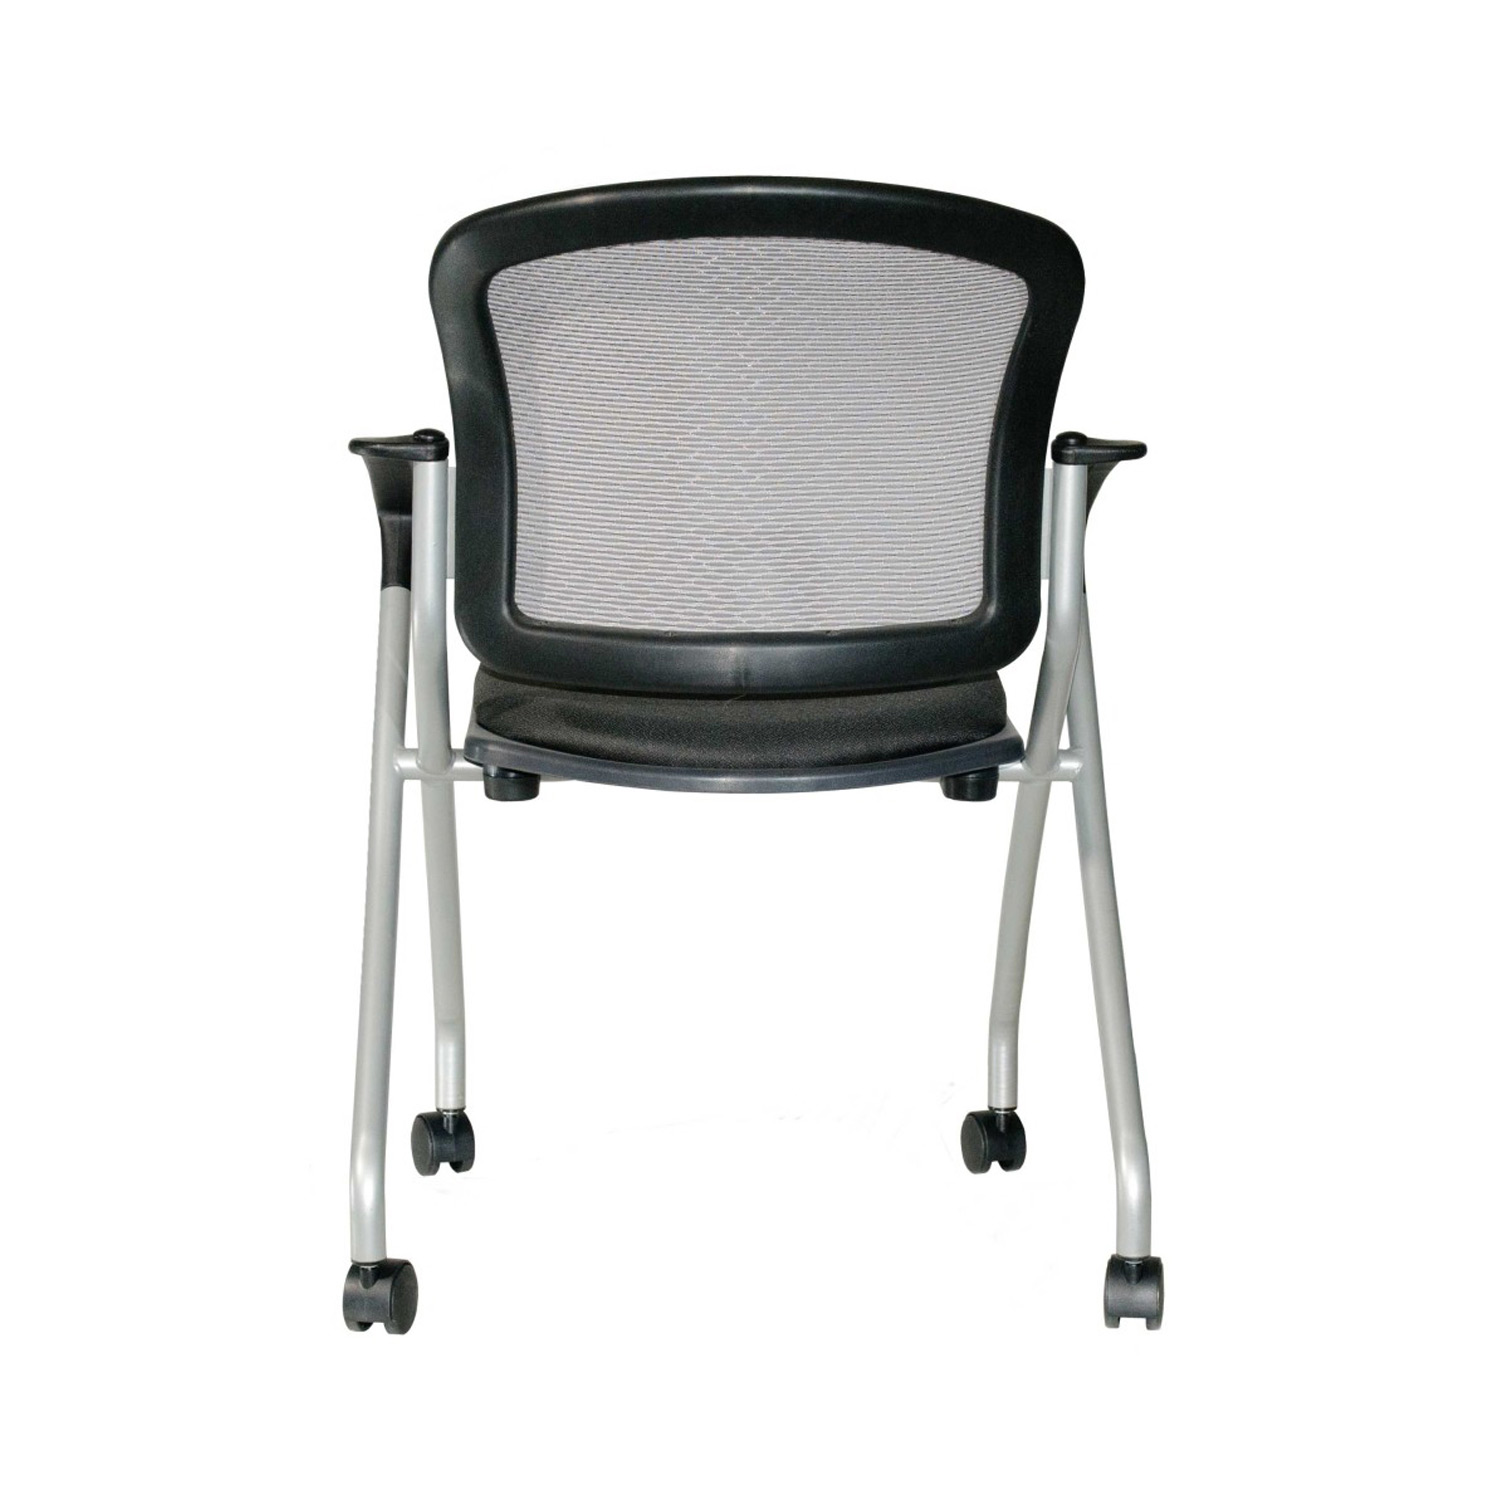 Foldable Office Chair Folding Office Chair Guest Chairs Office Furniture Chairs